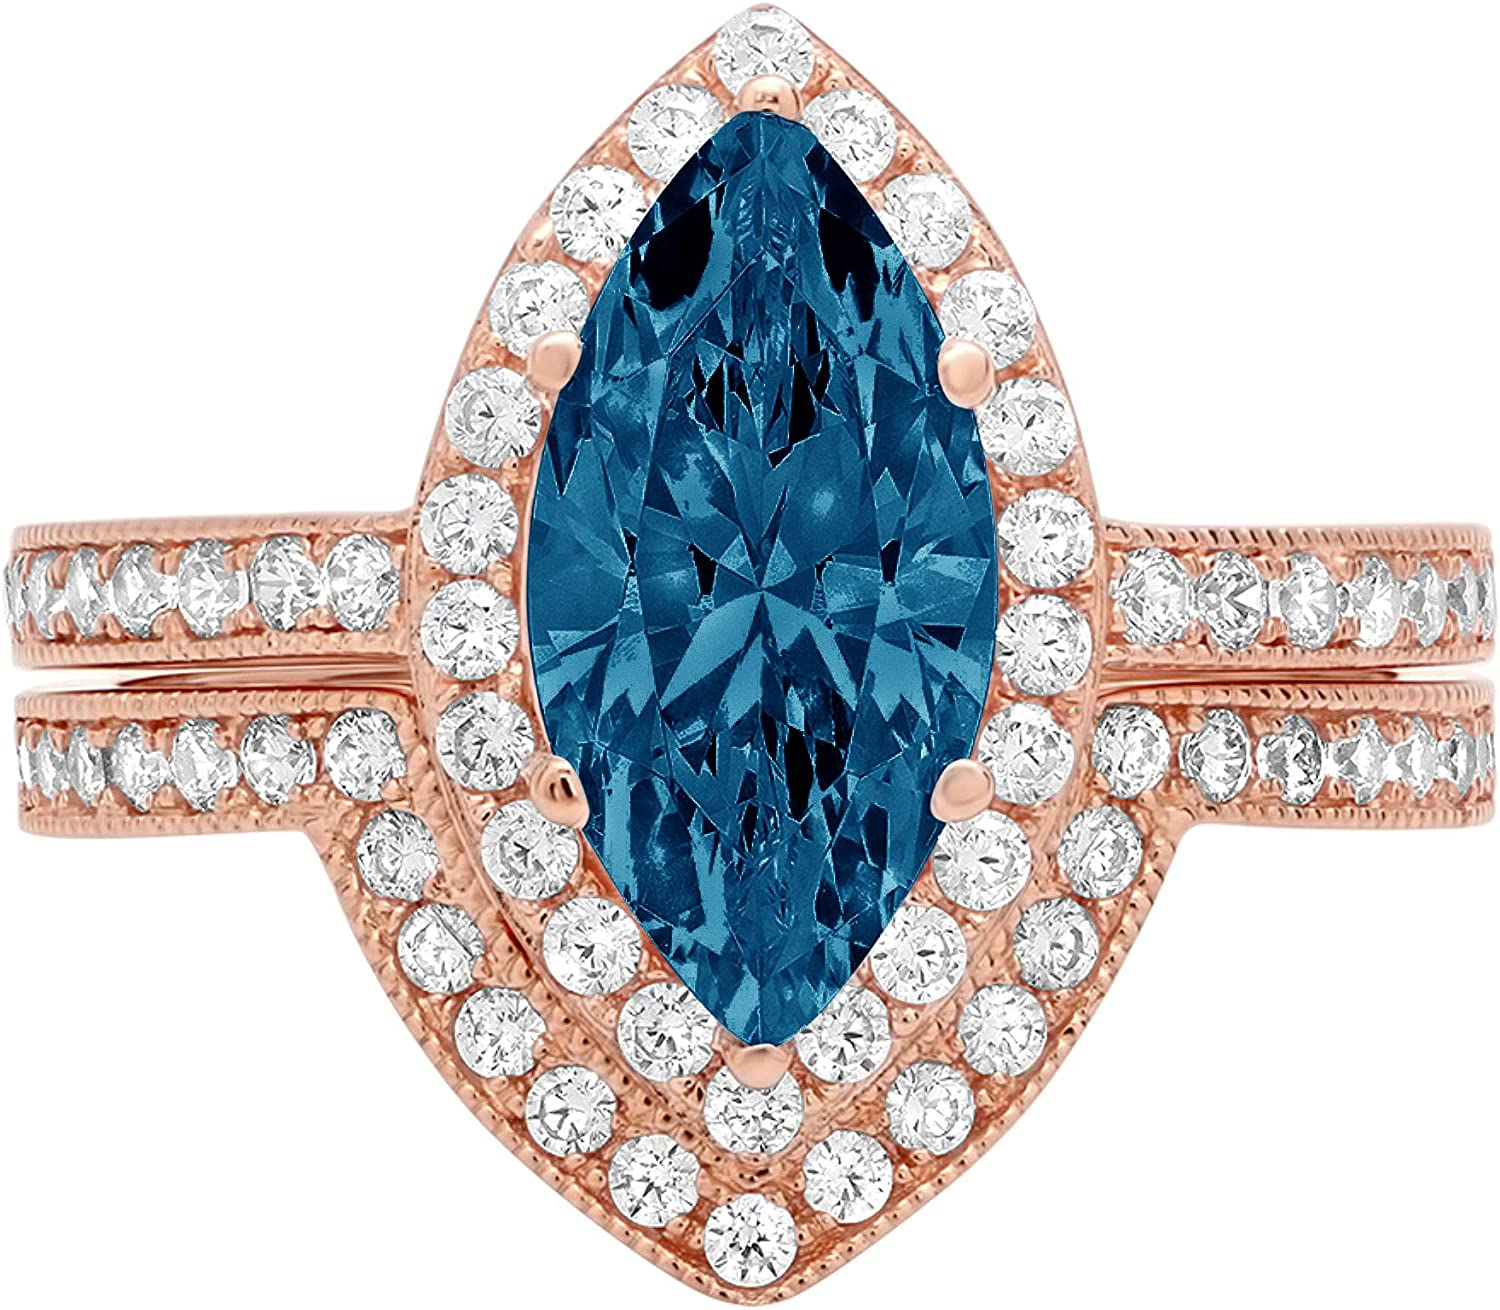 2.1ct Marquise Round Cut Pave Halo Solitaire with Accent VVS1 Ideal Natural Royal Blue Engagement Promise Designer Anniversary Wedding Bridal Ring band set 14k Rose Gold